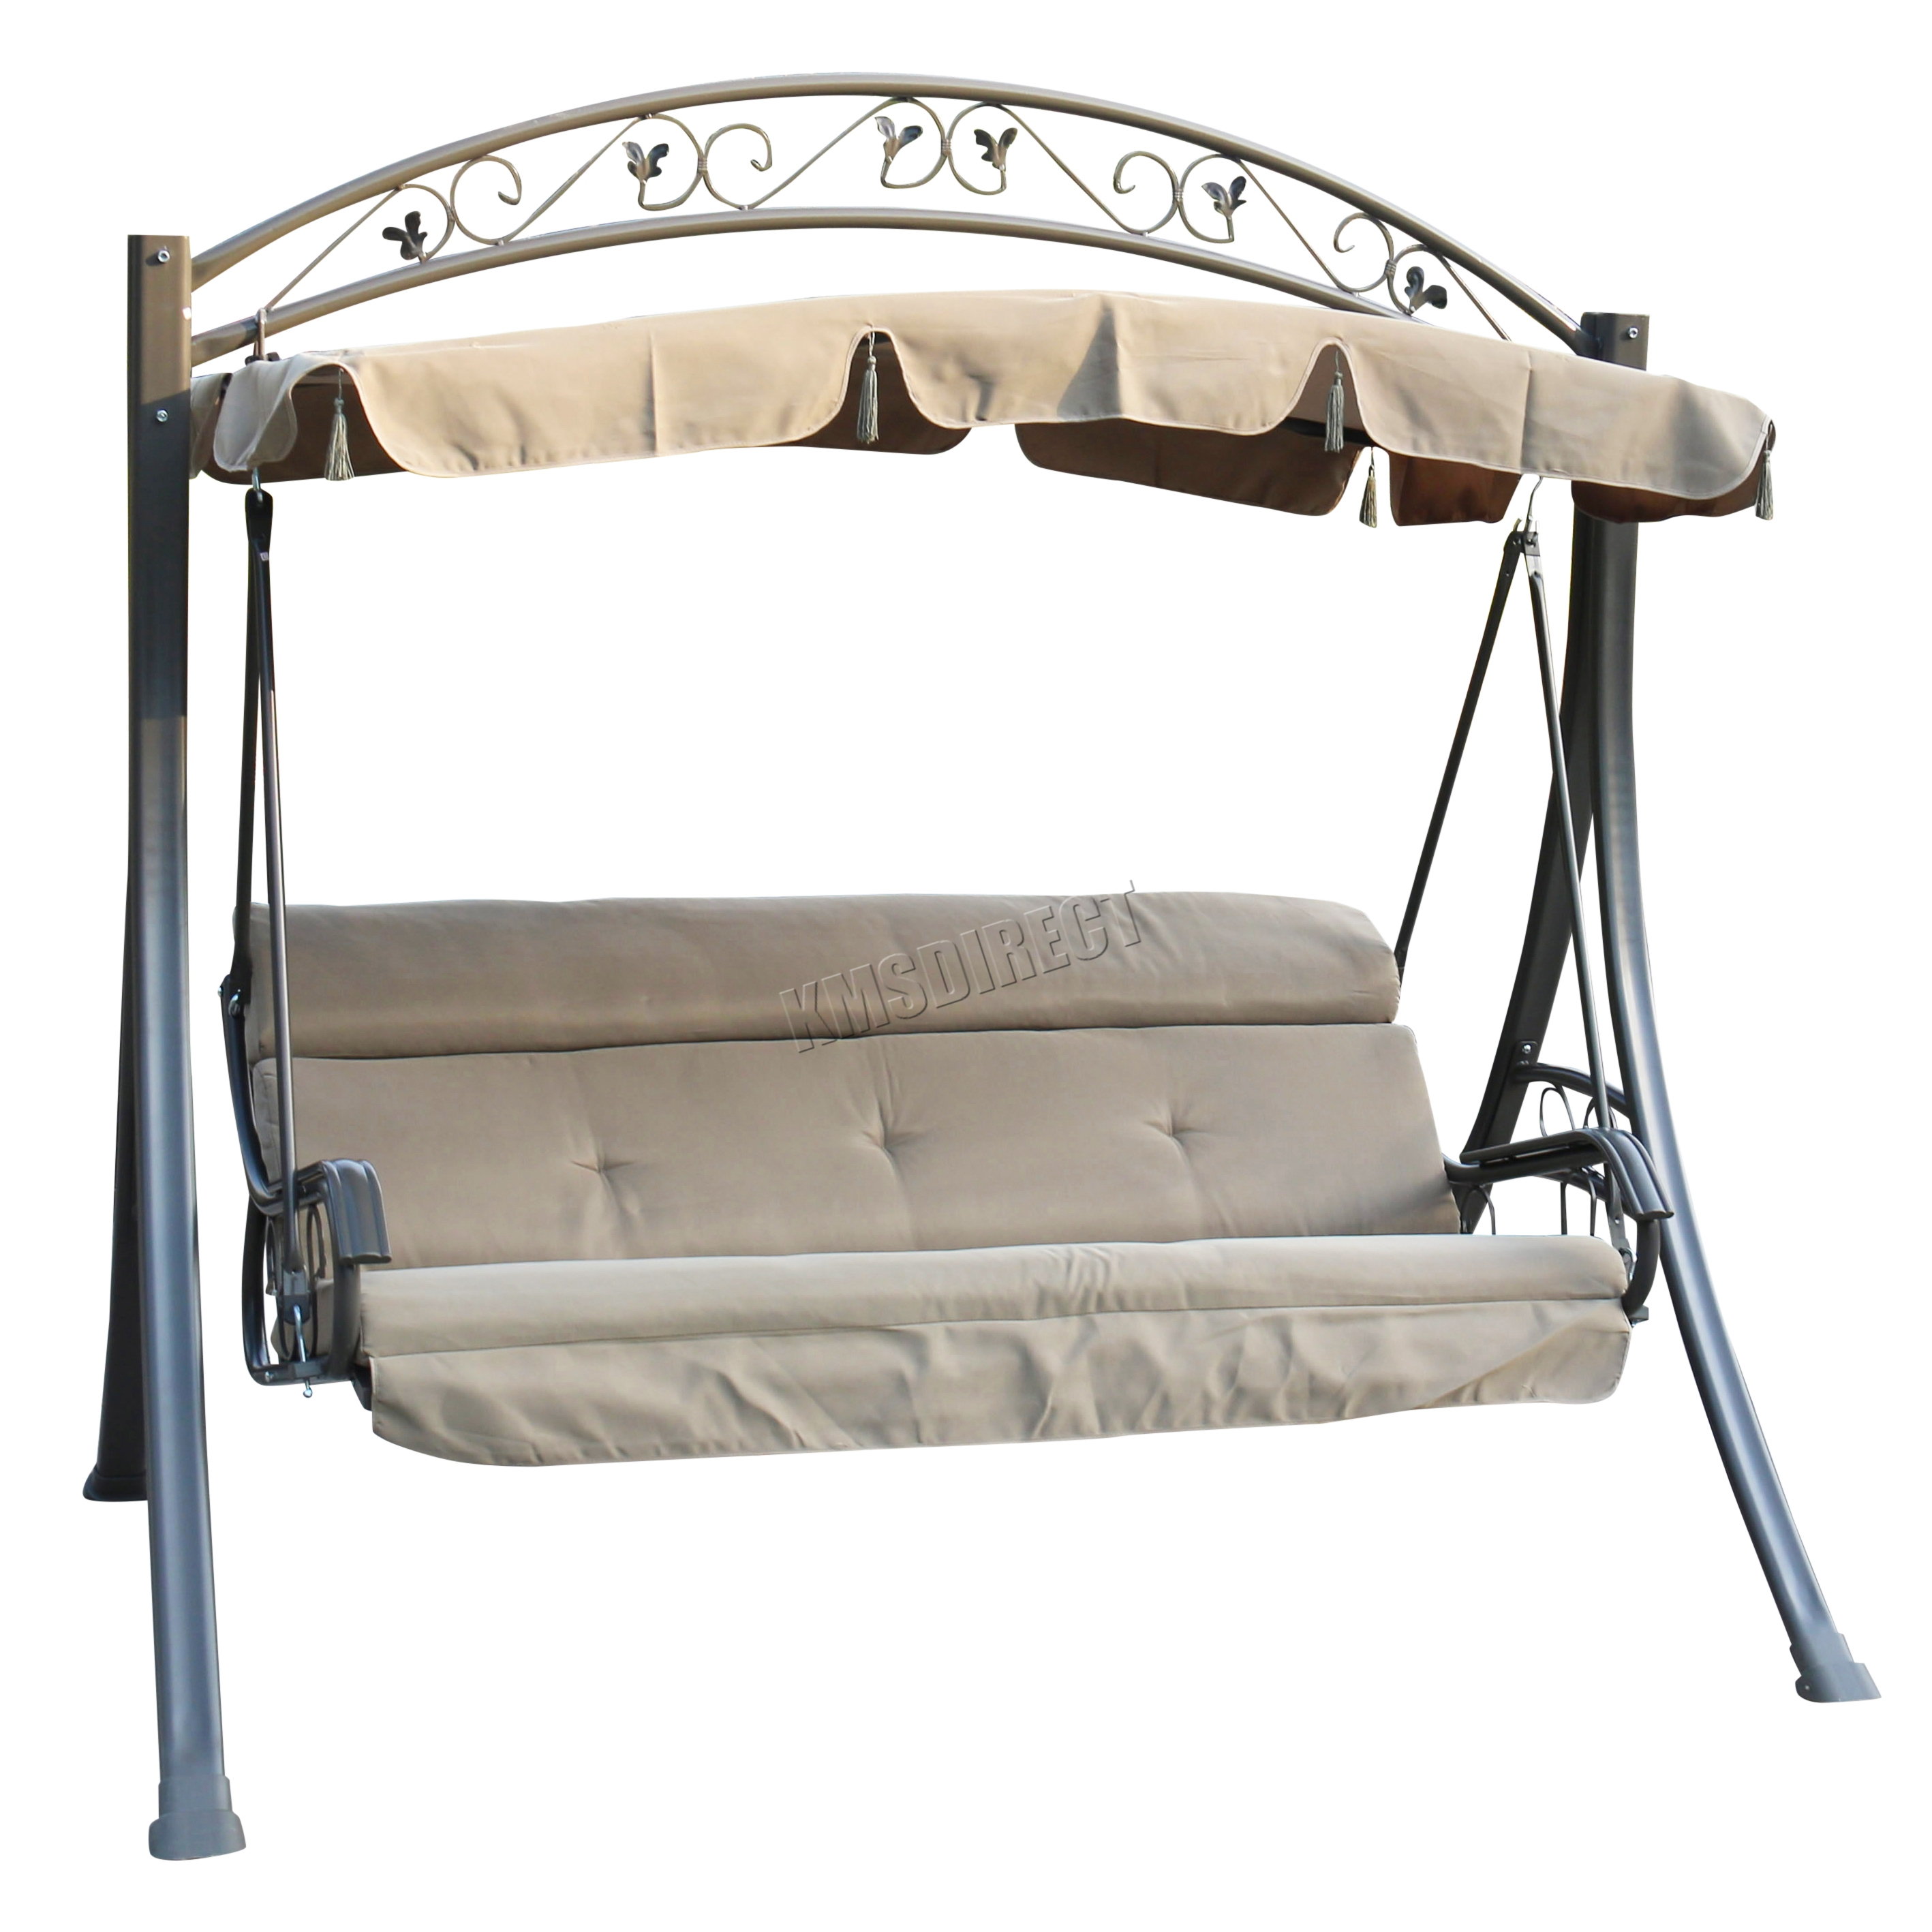 to swinging swing attractive chair garden outdoor applied swings chairs hammock inspiration your patio porch house inside amazing